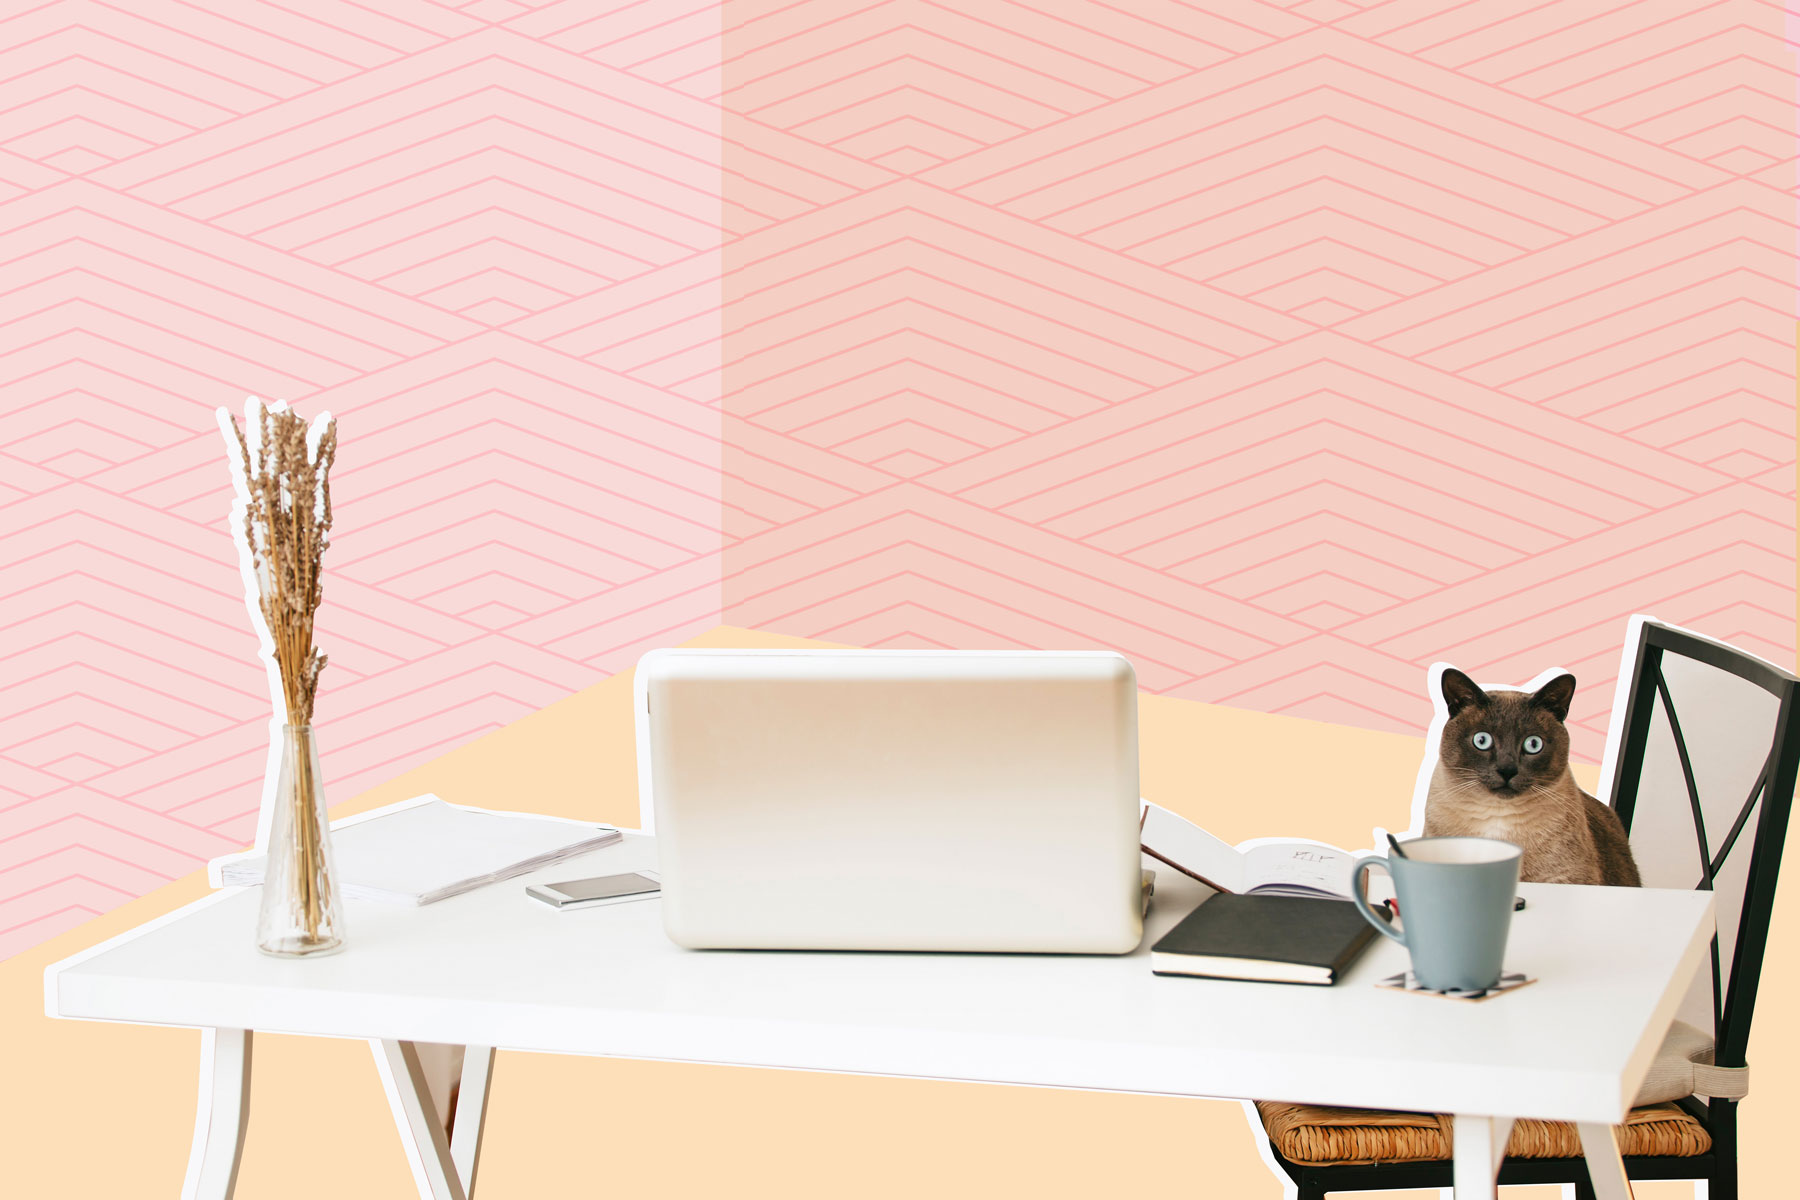 Best Work From Home Jobs 2019, According to FlexJobs - work from home cat